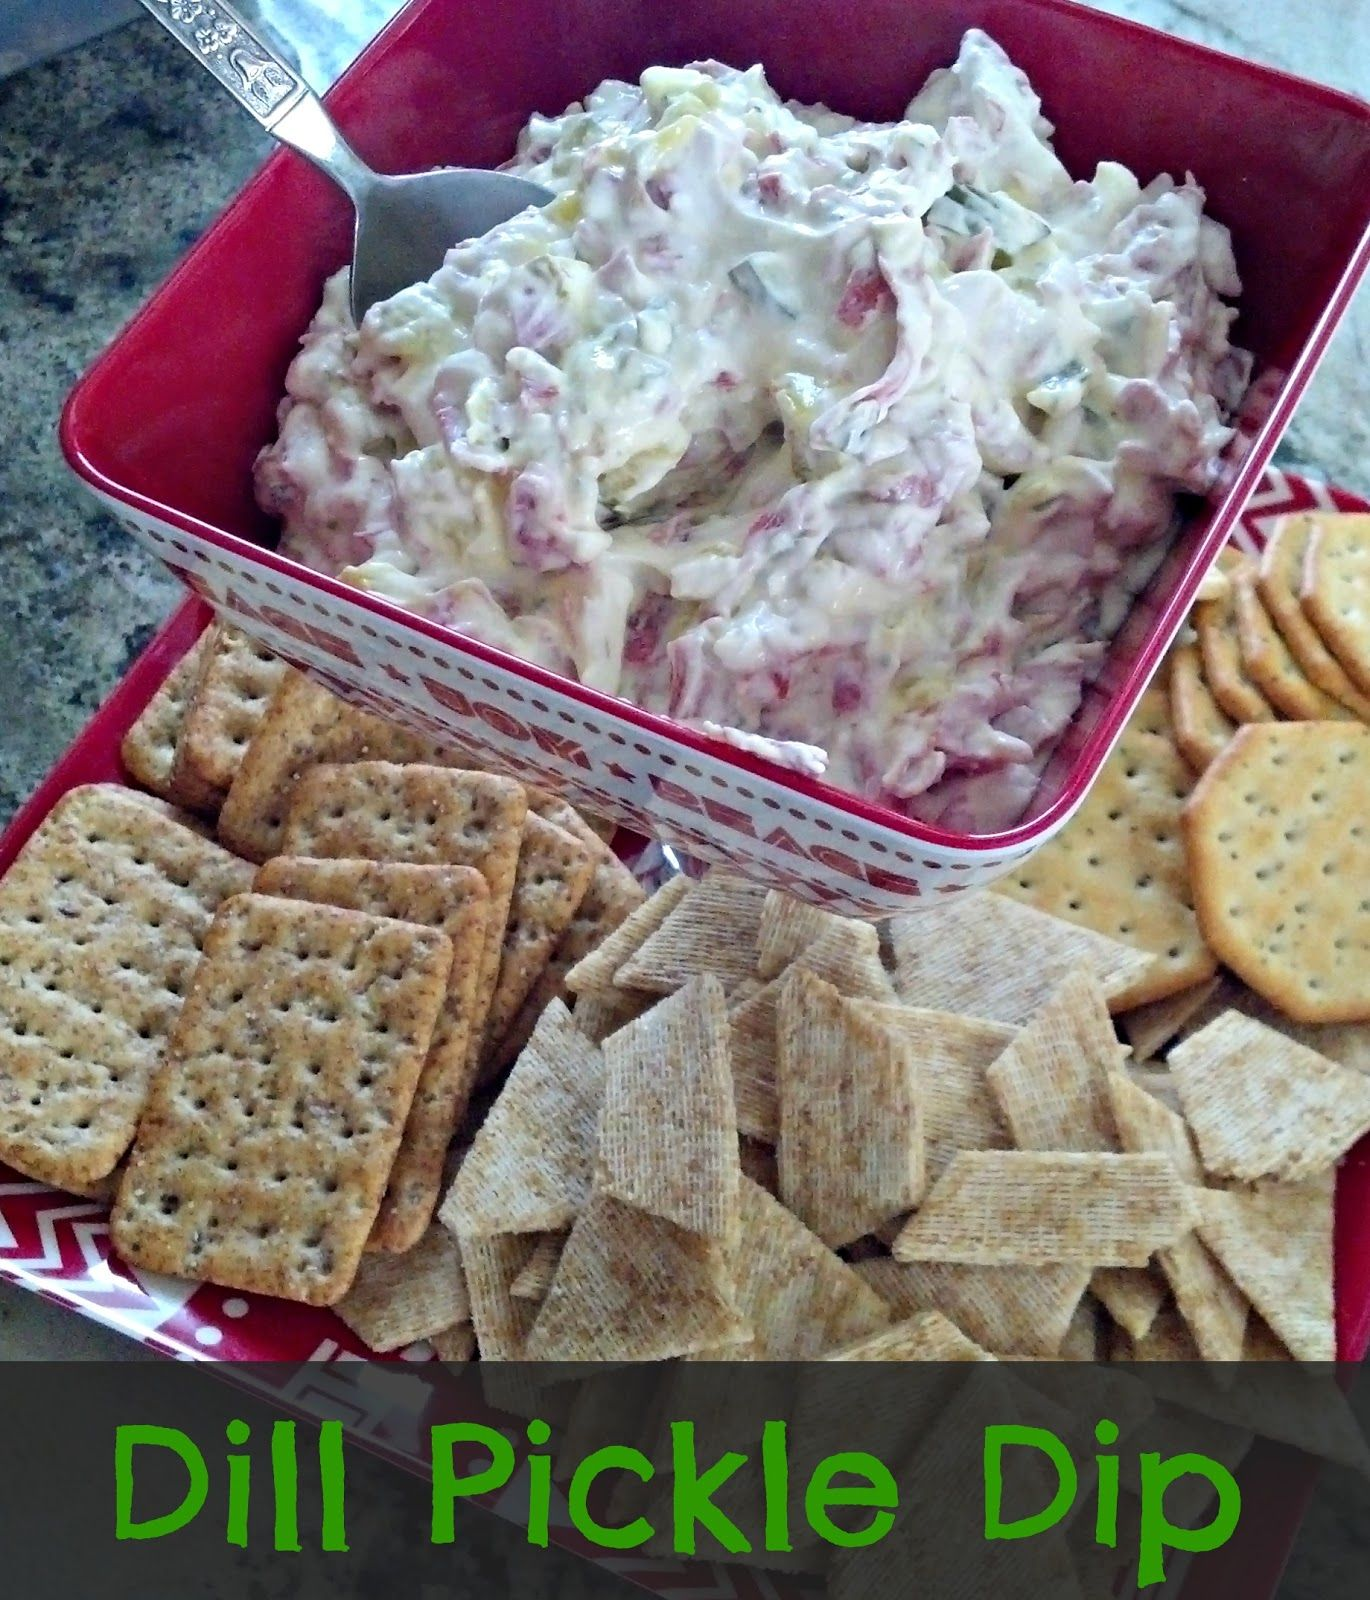 Dill pickle dipsuper easy and delicious dill pickle